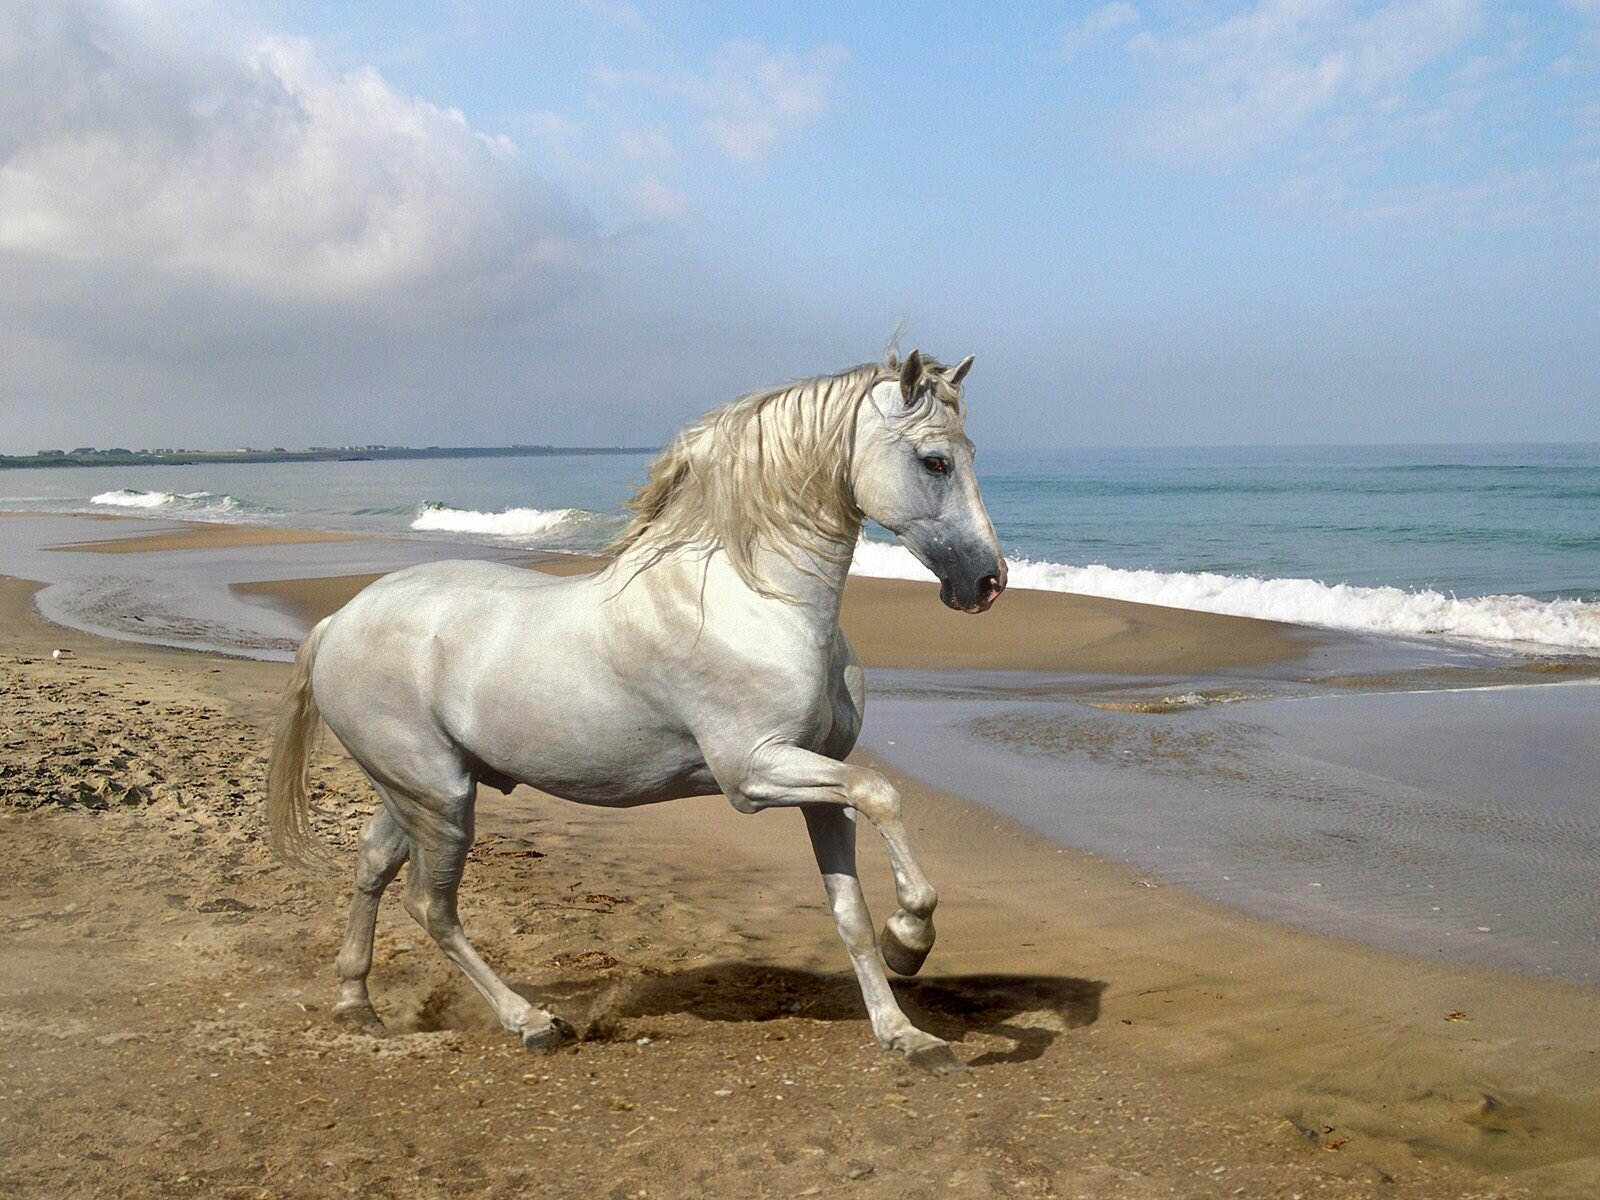 Top 13 Photos Of Beautiful Horses | MostBeautifulThings